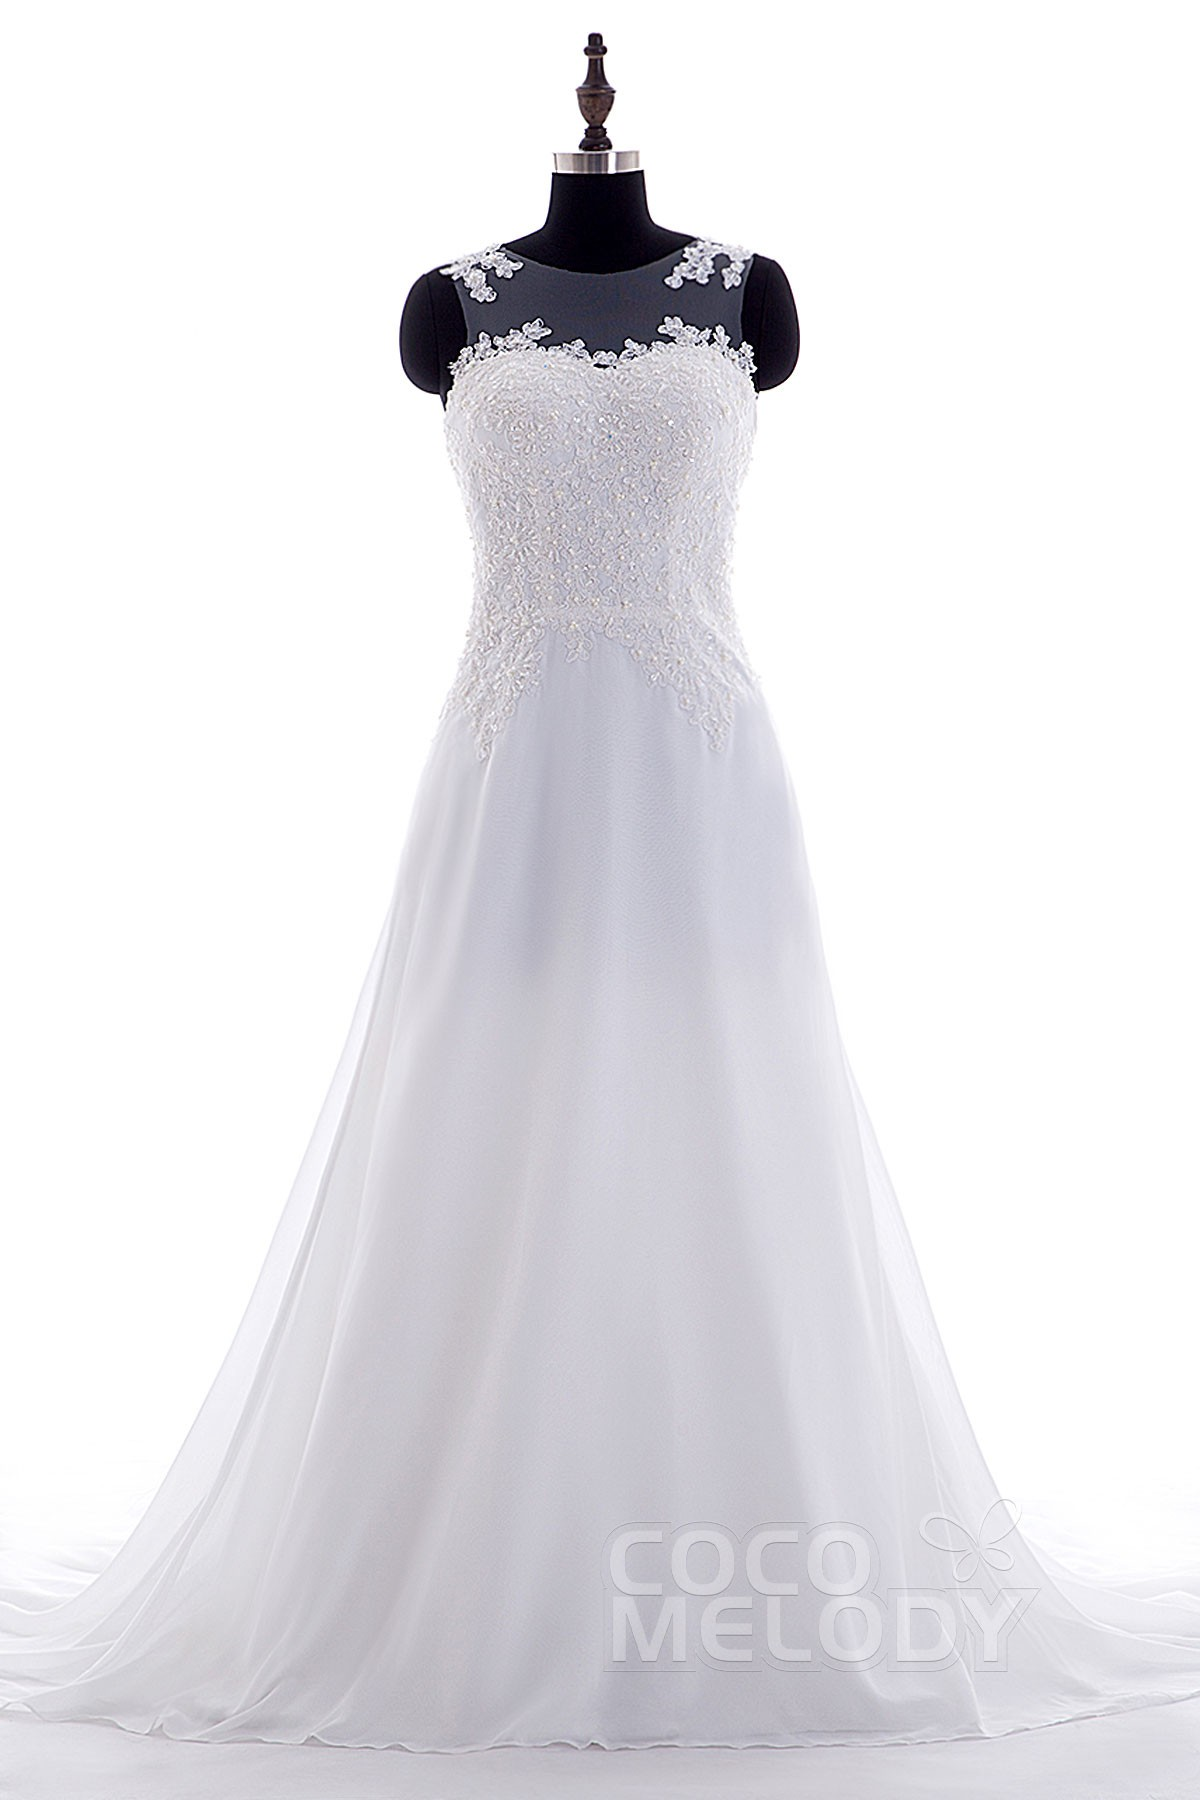 Fashion A-Line Illusion Court Train Chiffon White Sleeveless Wedding Dress Appliques LWST15003